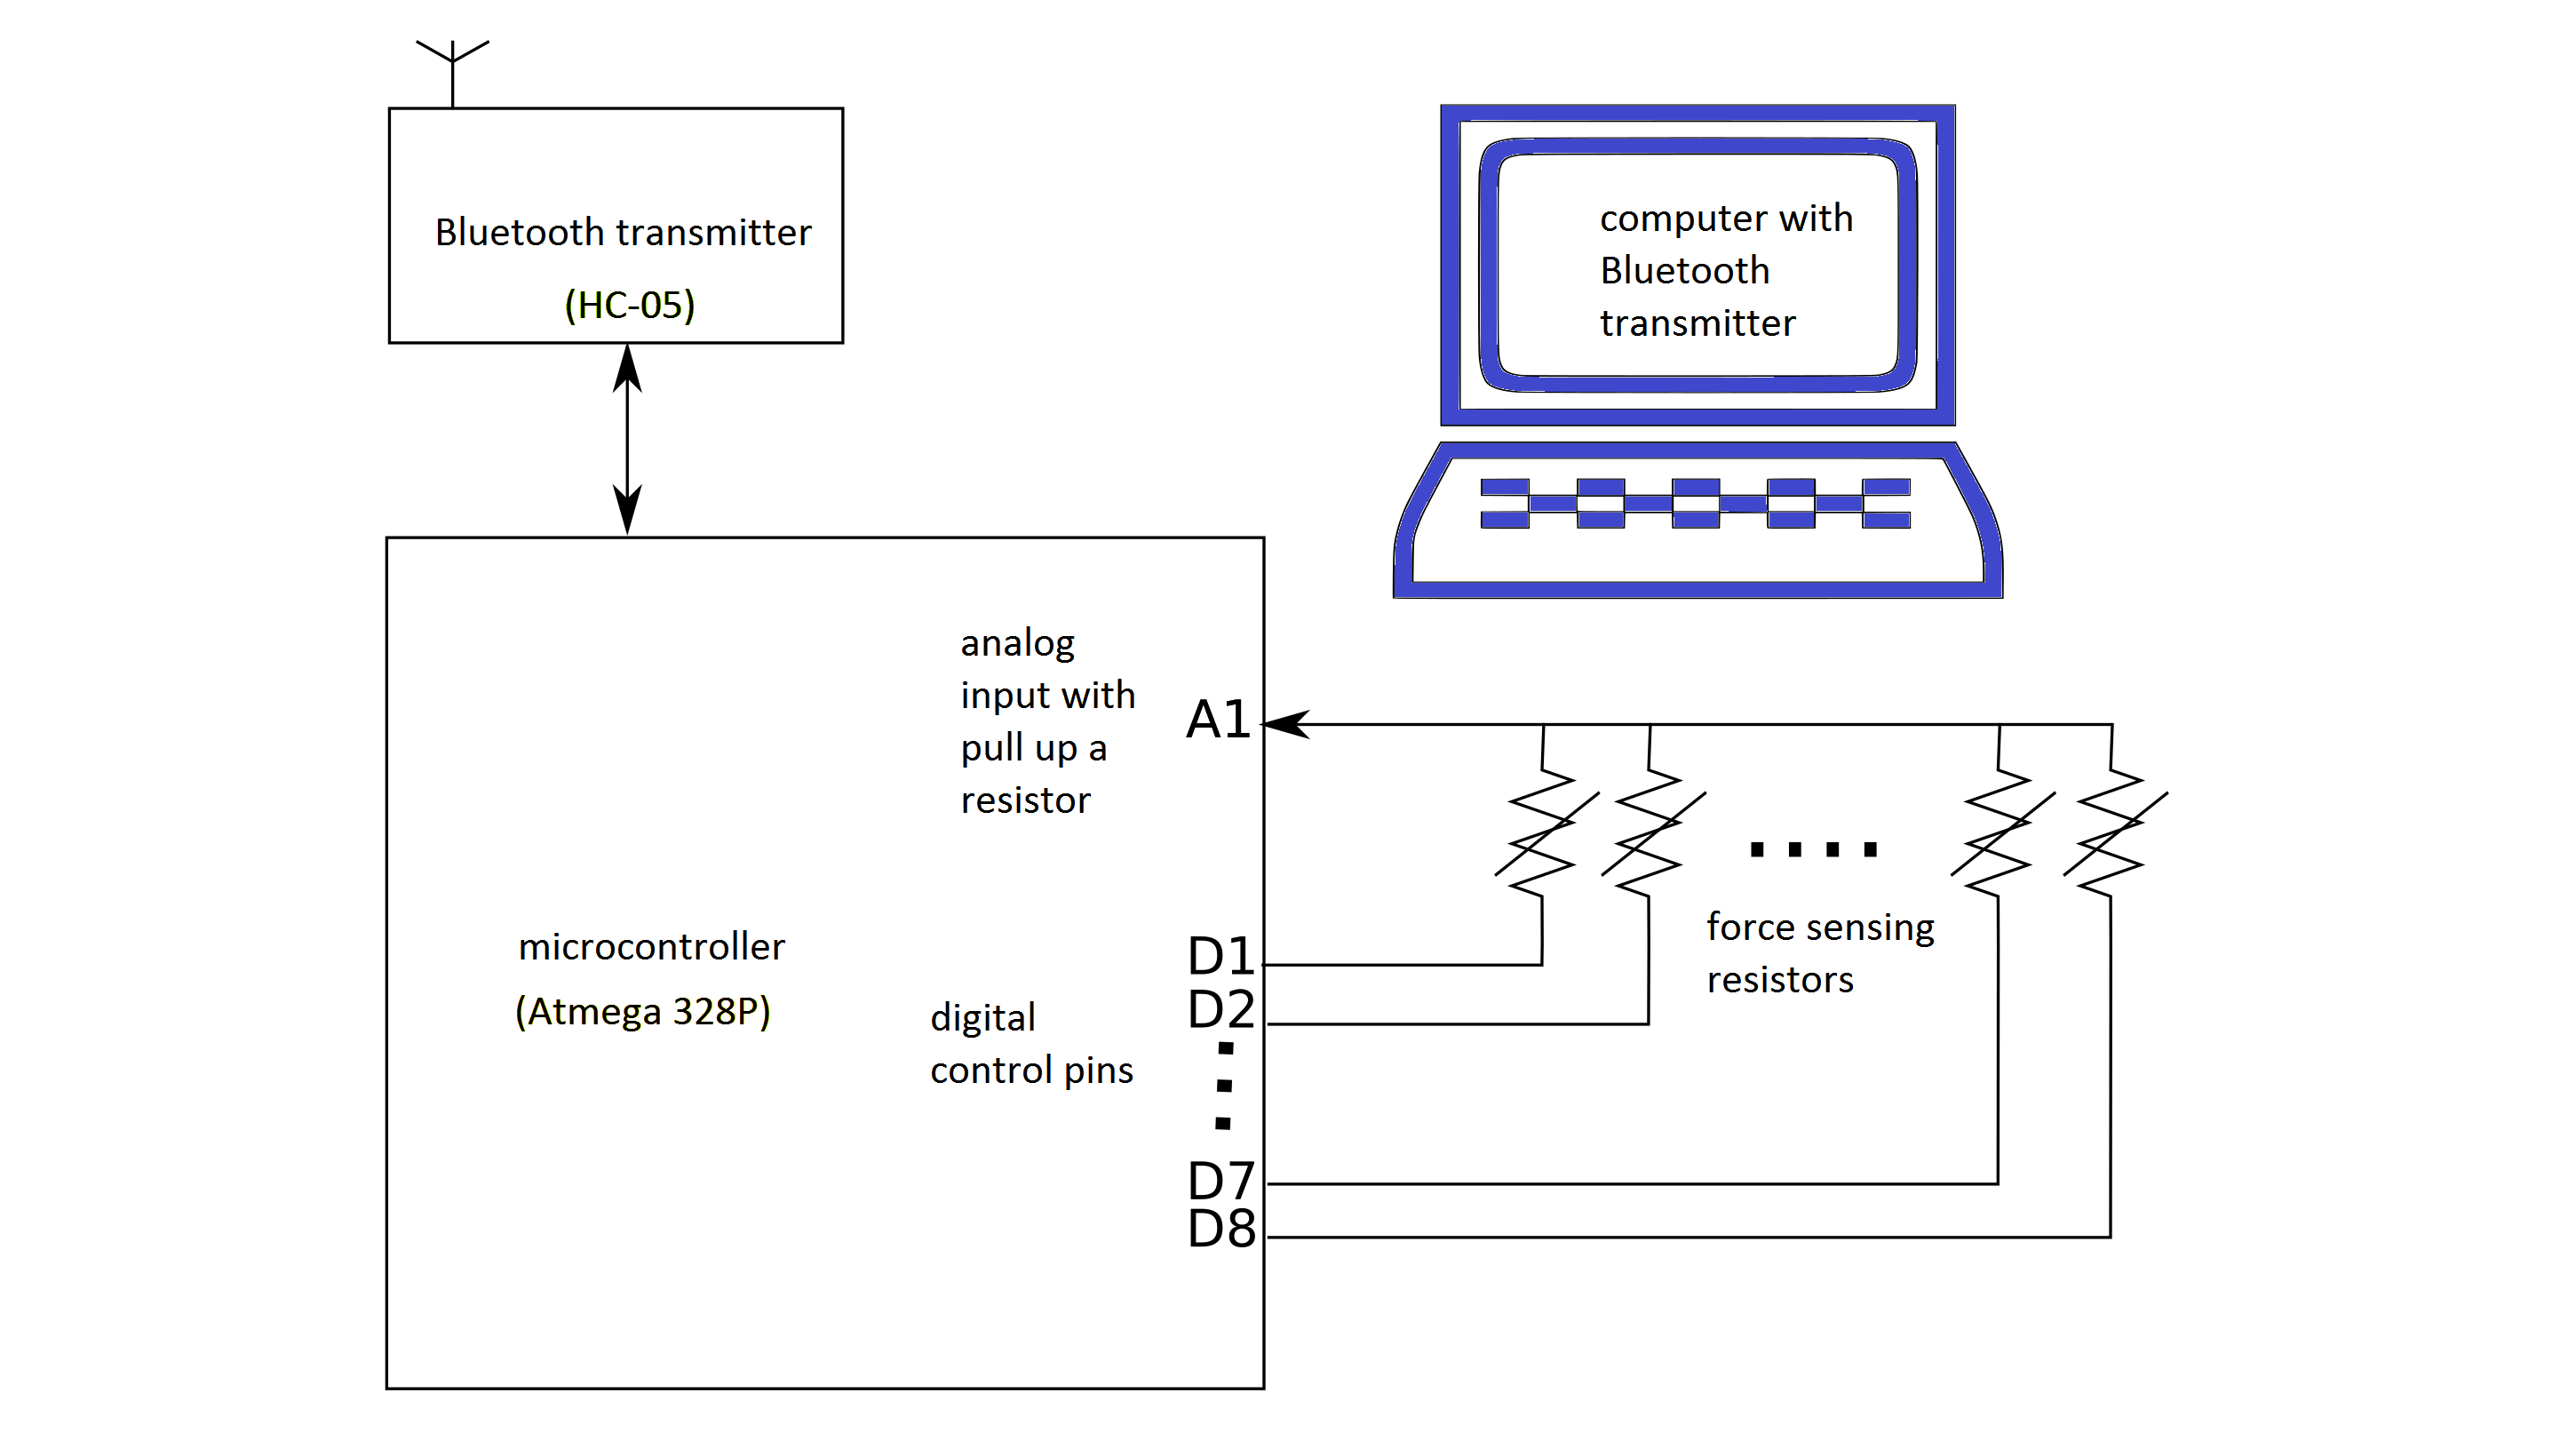 Jrat Counting Grasping Action Using Force Myography An Exploratory Figure 9 Block Diagram Of Emg Signal Via Human Finger After Applying View This 2 Schematic For Fmg Extraction And Data Transmission The Microcontroller Sampled From 8 Frs Sensors